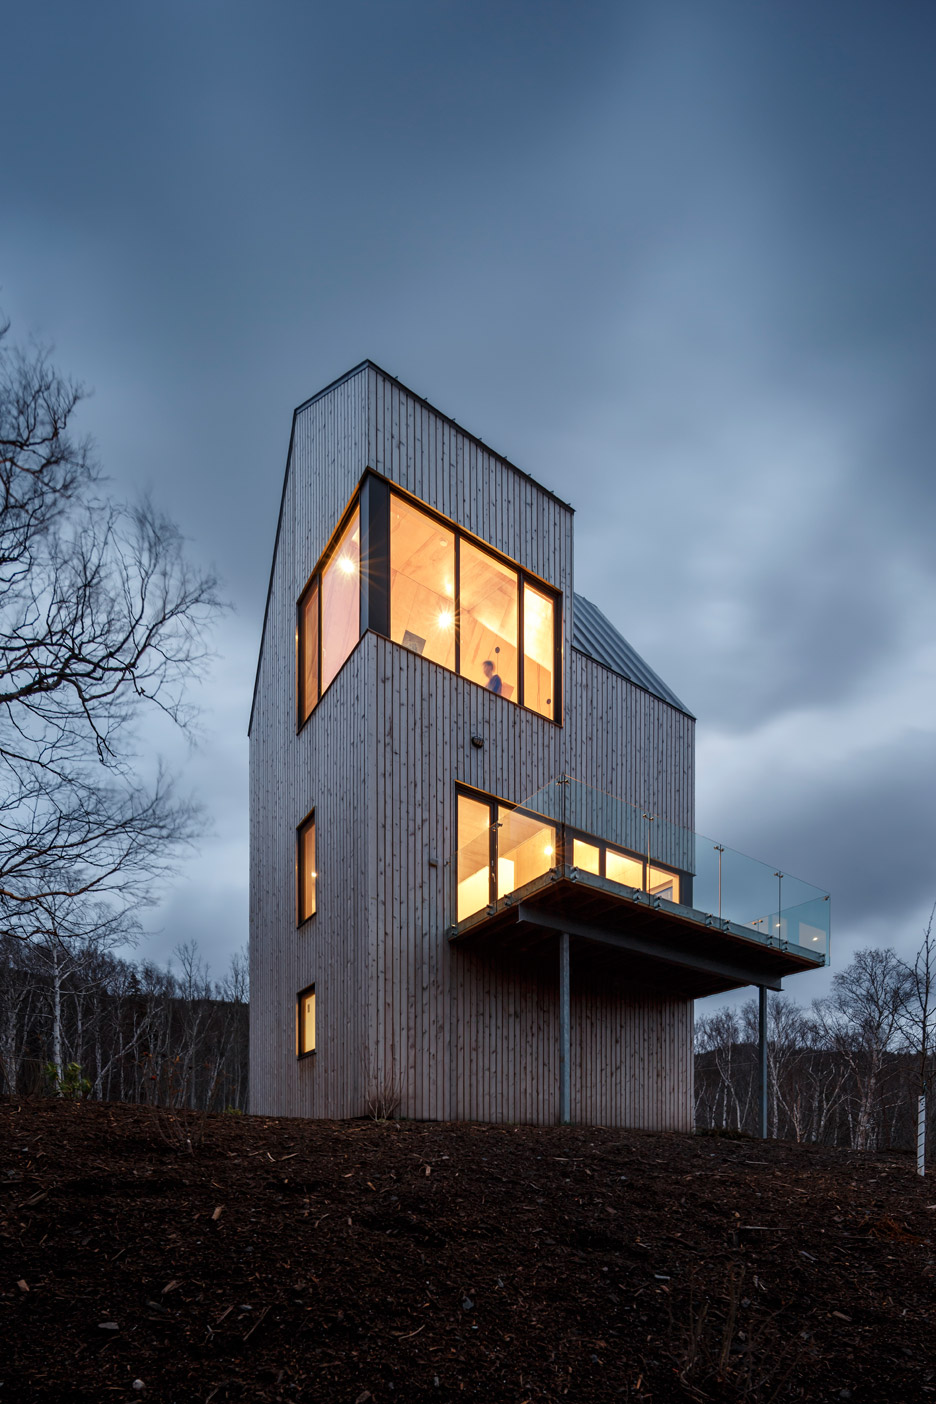 Rabbit Snare Gorge cabin by Design Base 8 and Omar Gandhi